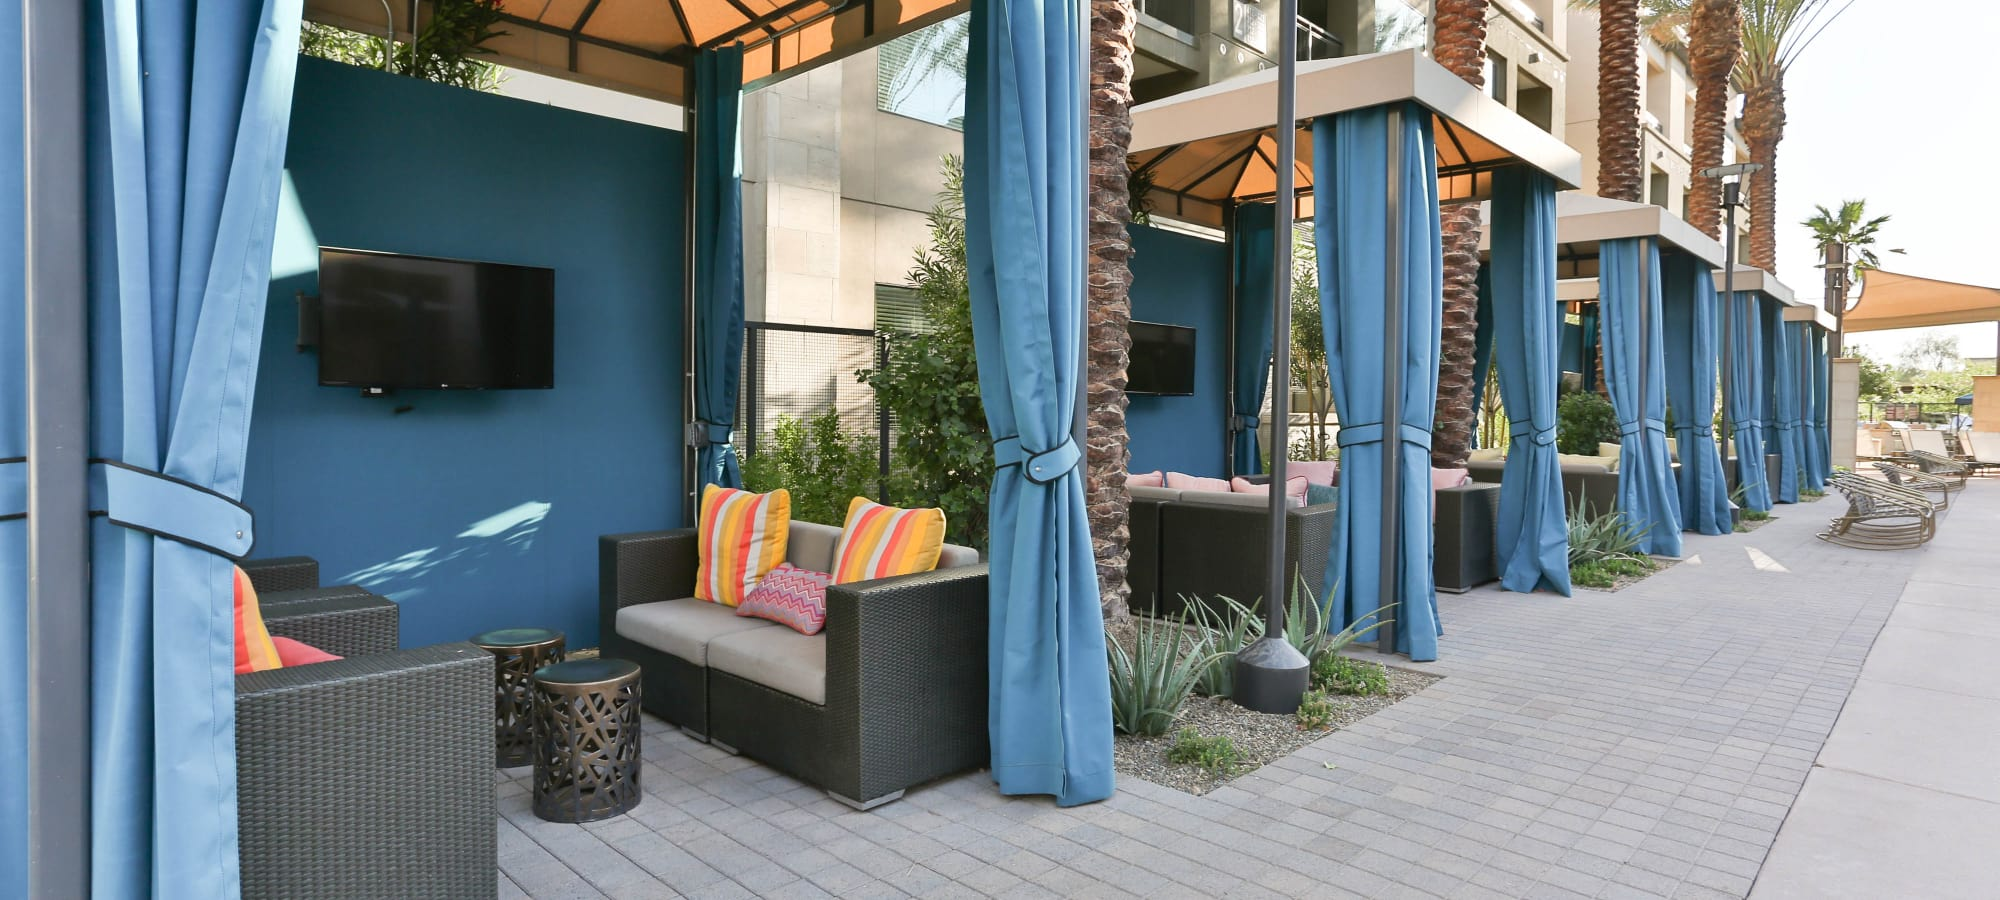 Cabanas near the pool at Avant at Fashion Center in Chandler, Arizona